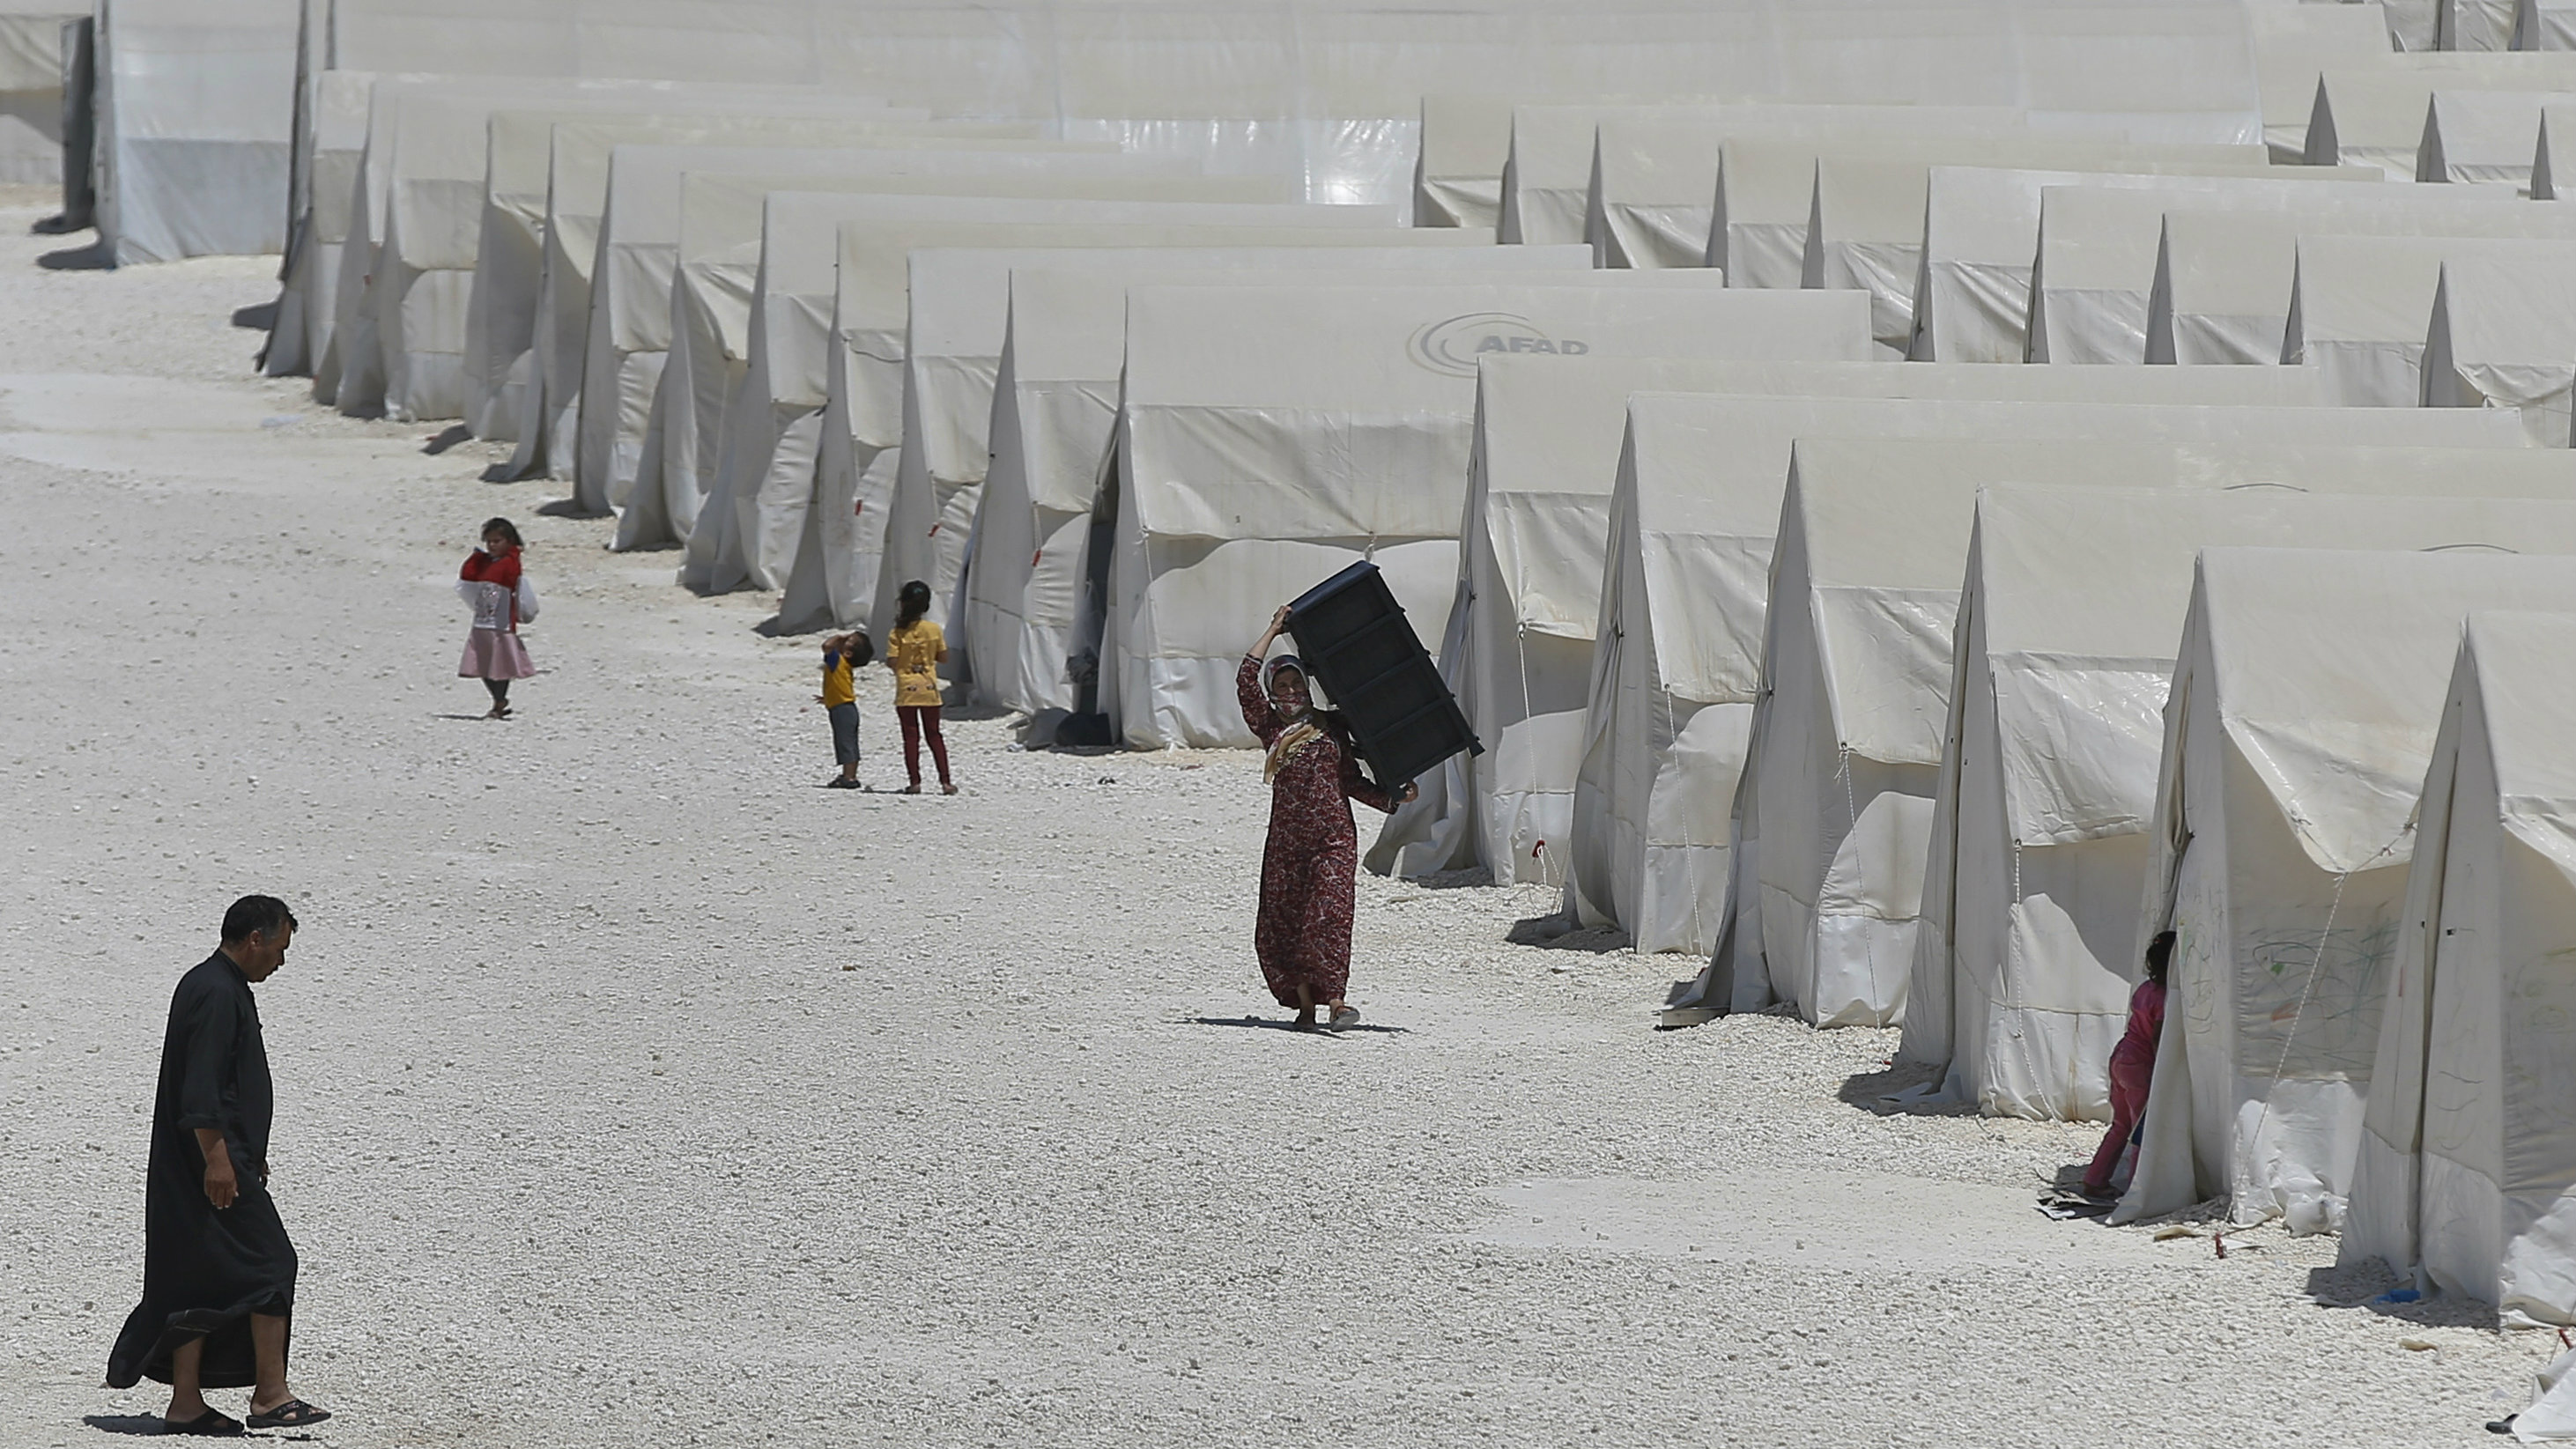 Syrian refugees walk around a refugee camp in Suruc, on the Turkey-Syria border, Friday, June 19, 2015. Ahead of World Refugee Day on Saturday, June 20, 2015, the UN refugee agency, UNHCR, estimated that a total of 11.6 million people from Syria had been displaced by the conflict by the end of last year, the largest such figure worldwide. Turkey is the world's biggest refugee host with 1.59 million refugees, according to the most recent U.N. figures.